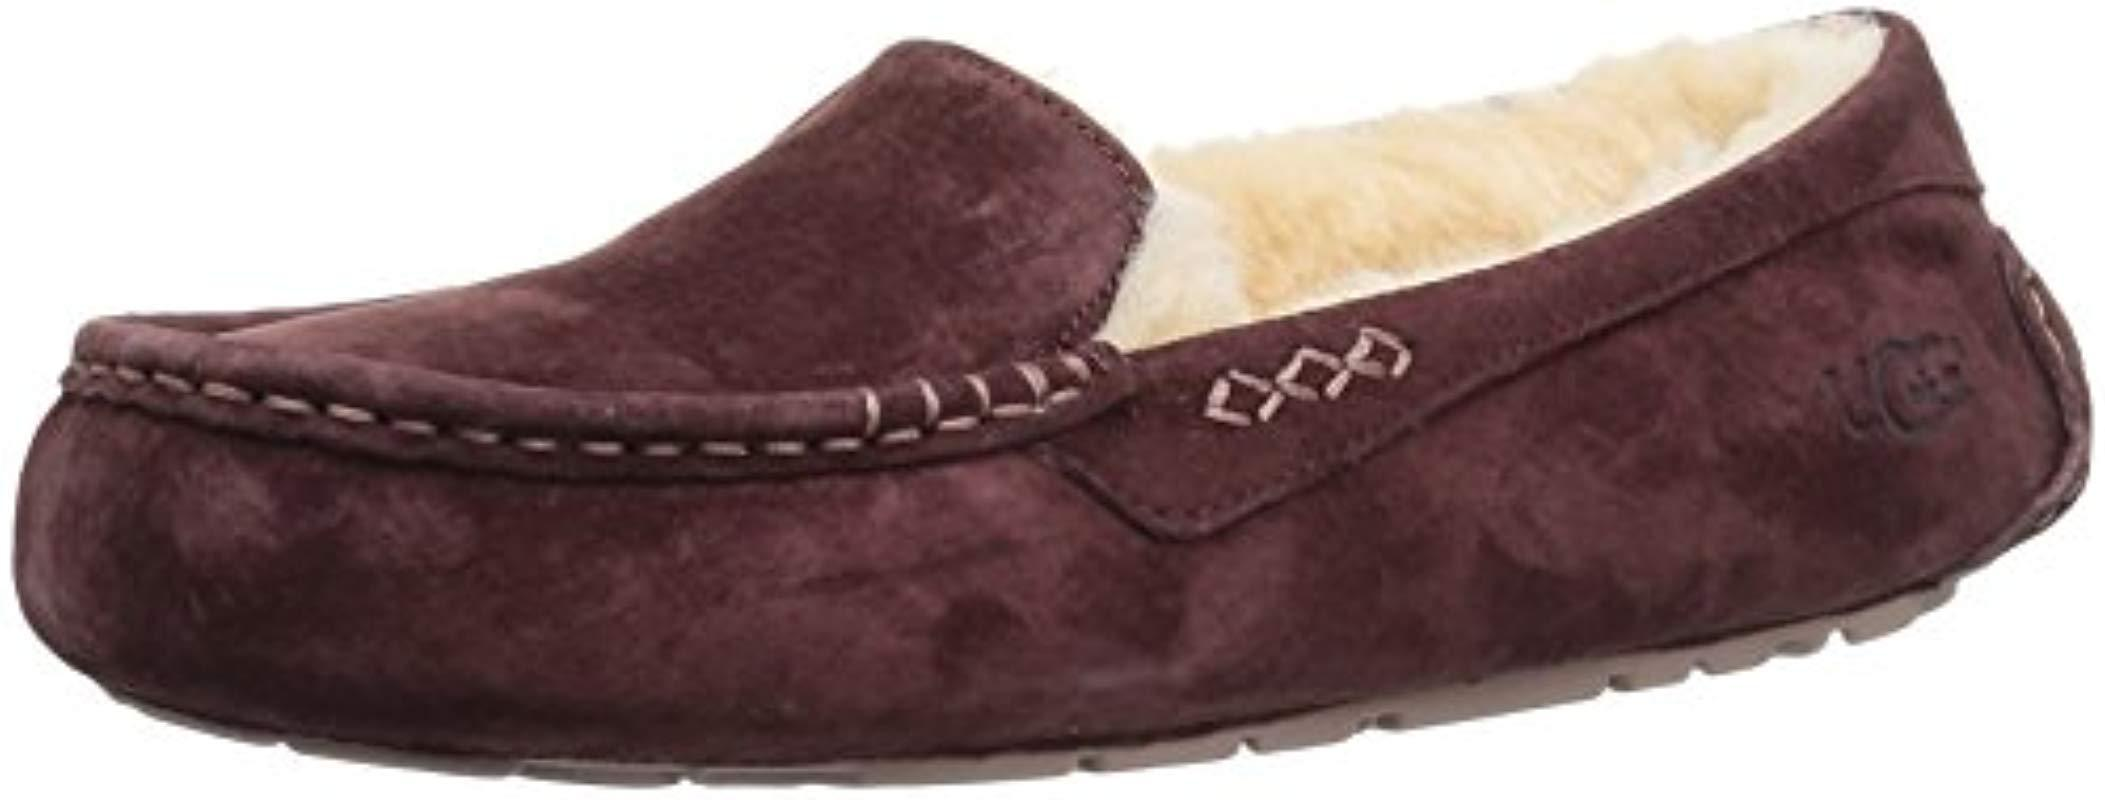 520f626c9f3 Ugg - Multicolor Ansley Moccasin - Lyst